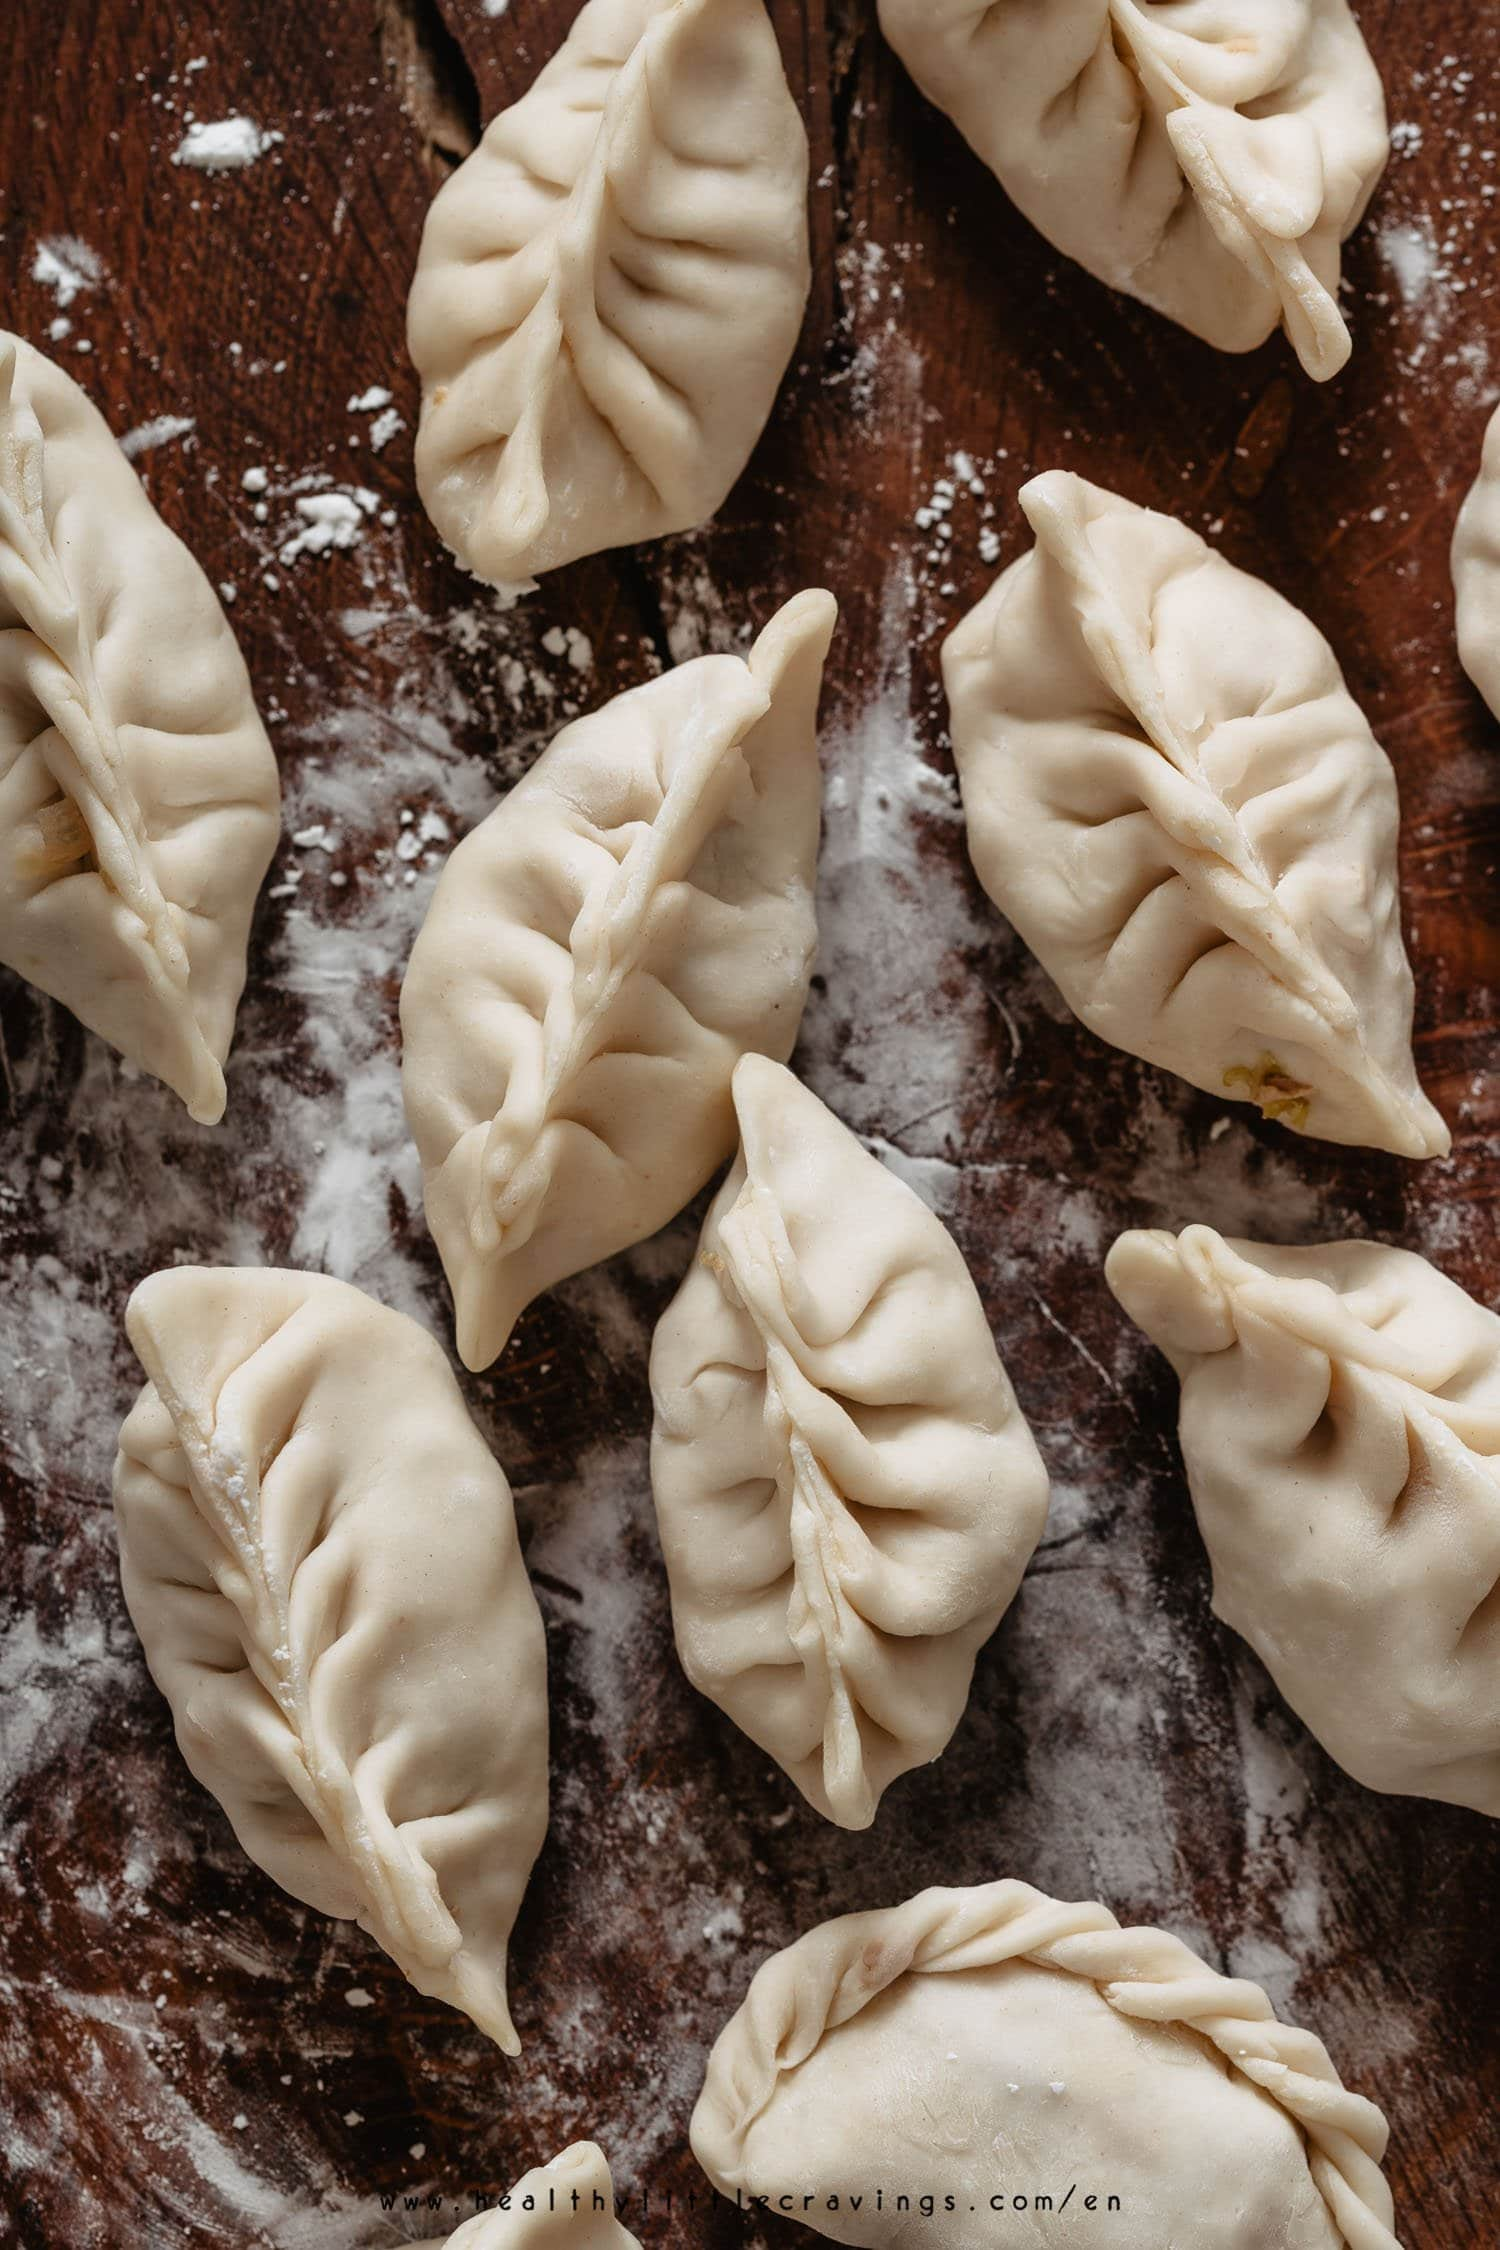 Perfect raw dumplings ready to be cooked